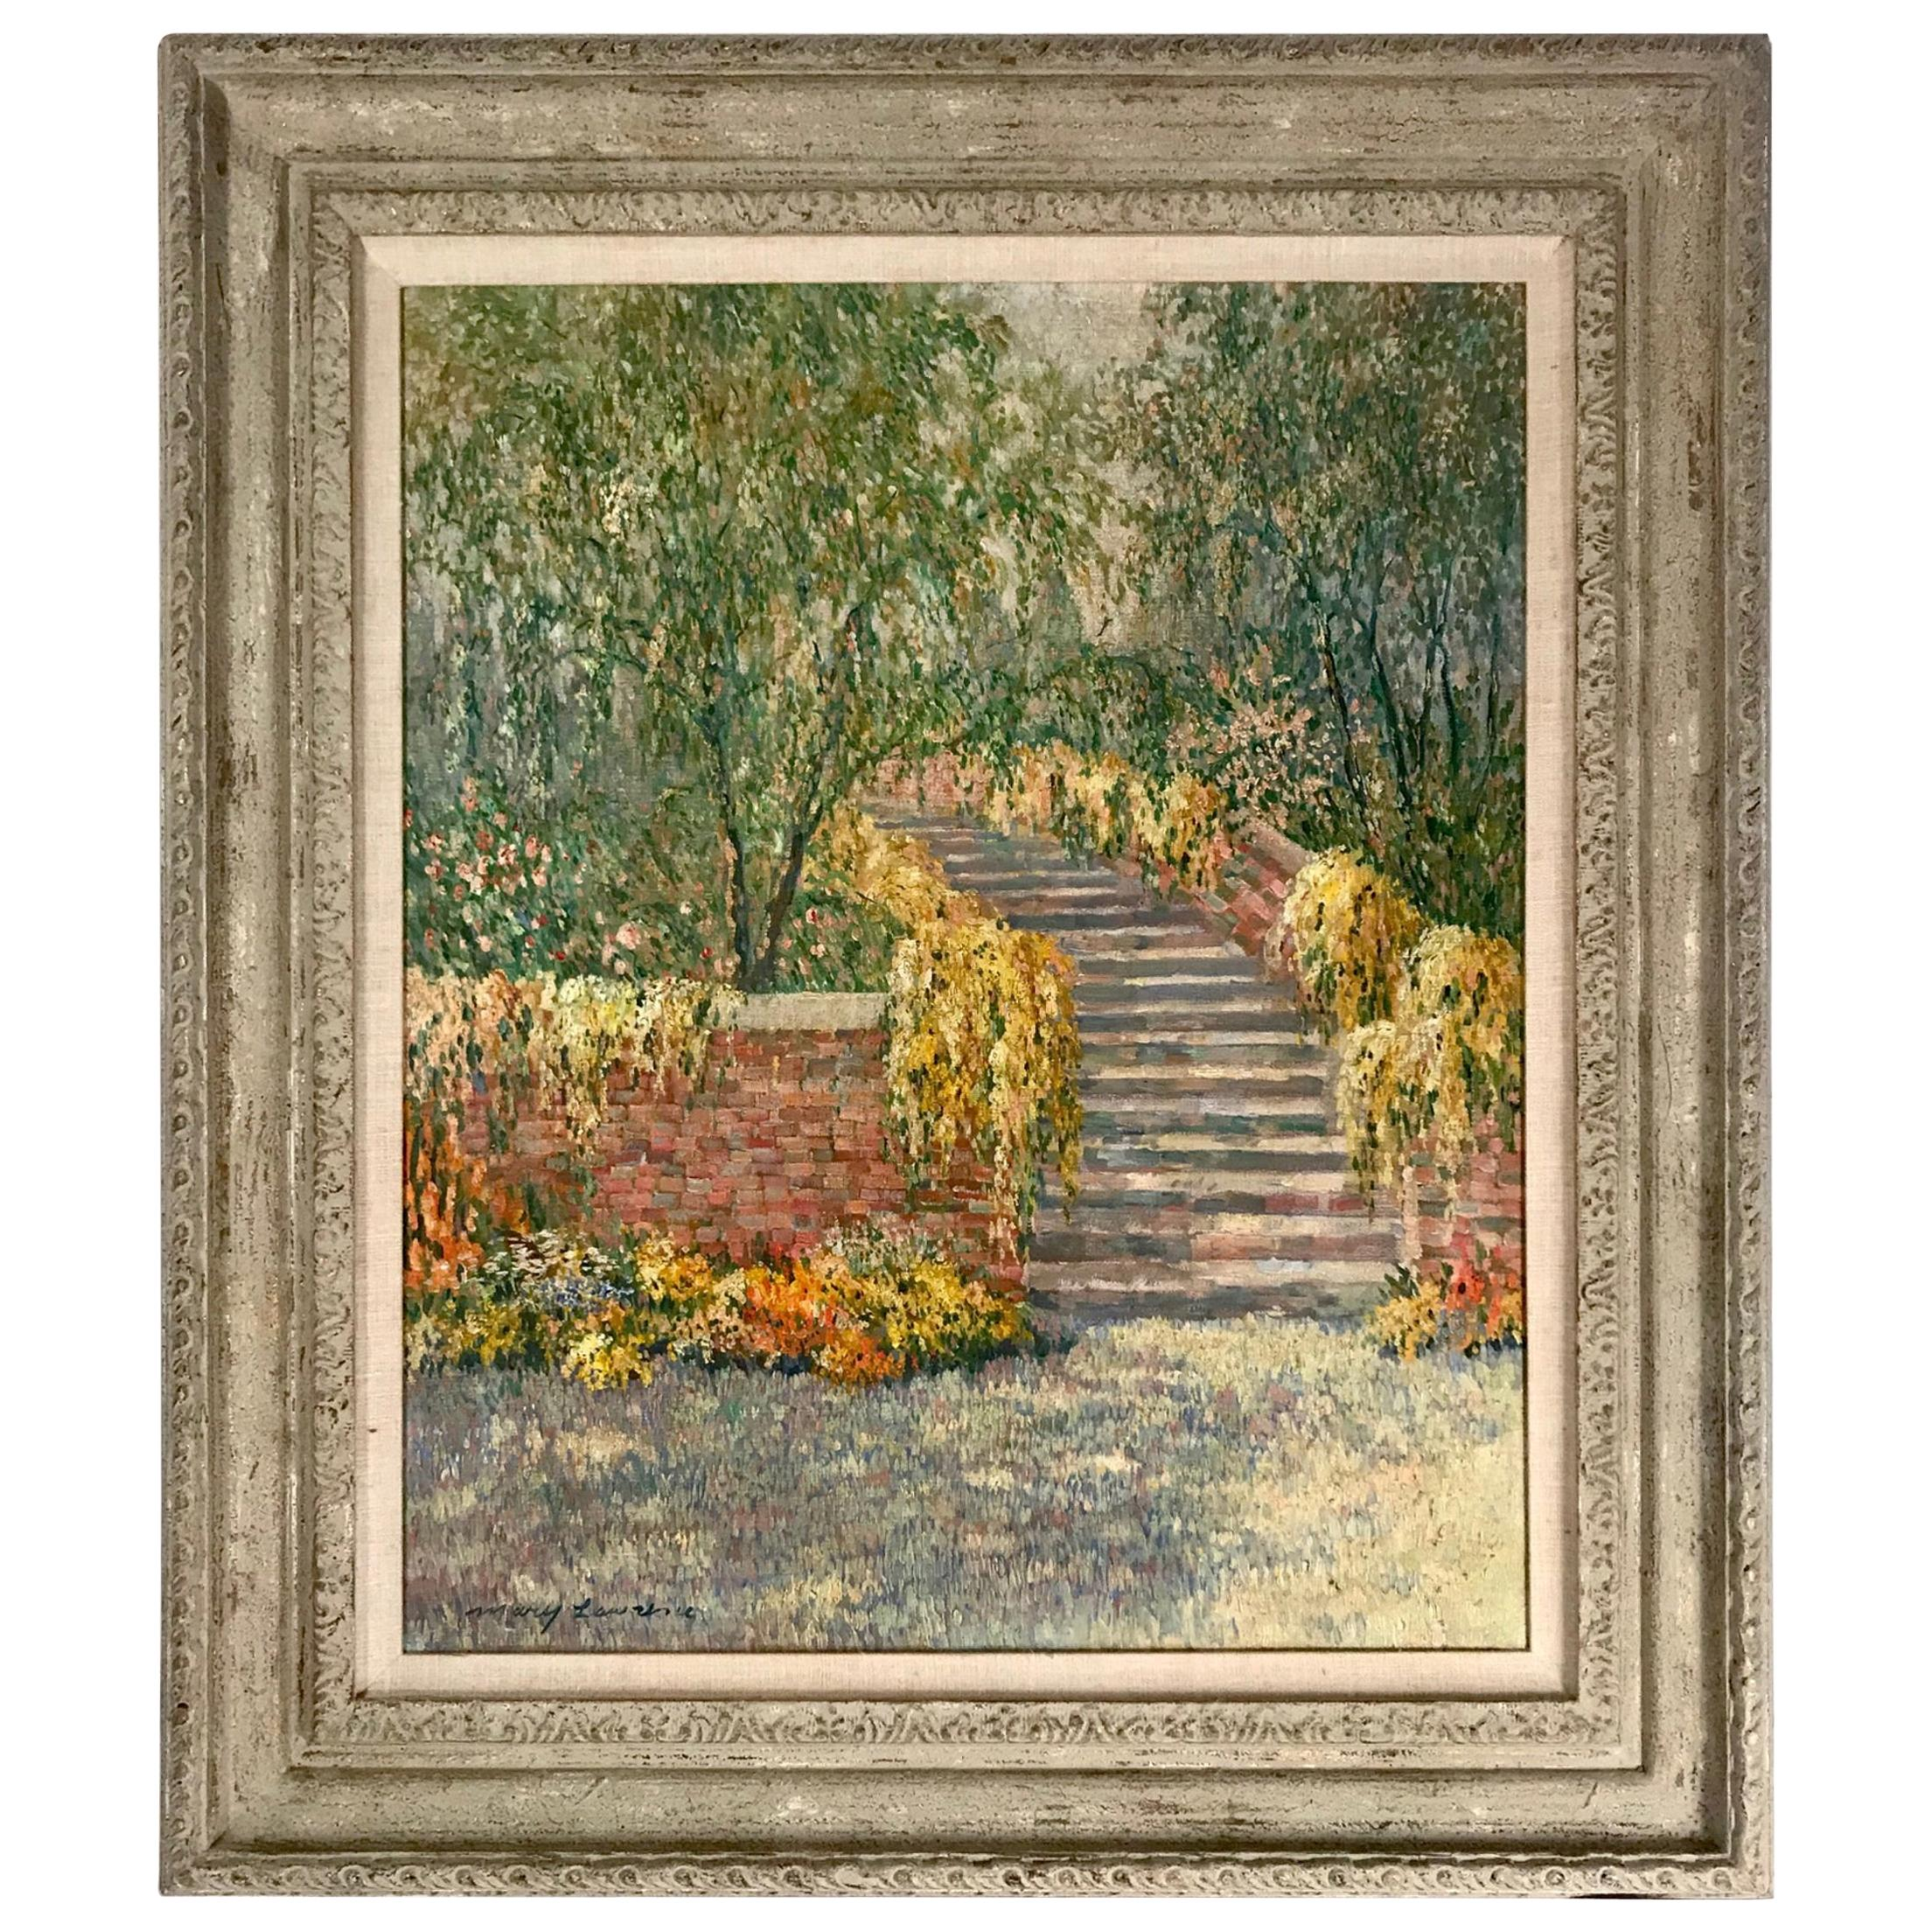 20th Century Impressionist Oil Painting Garden Landscape by Mary Lawrence